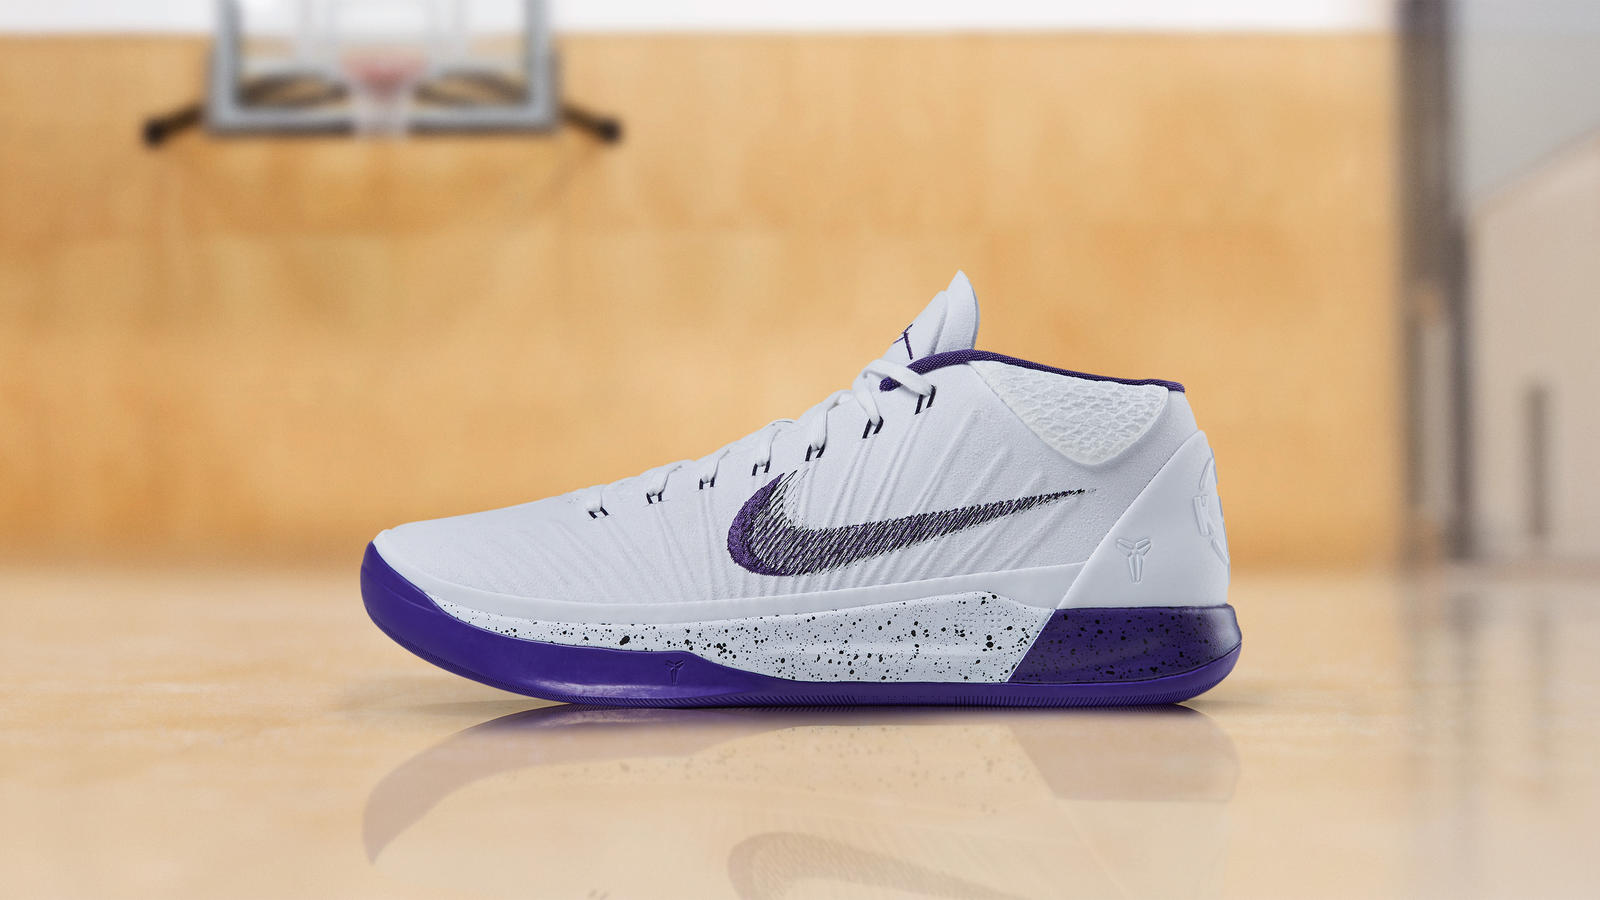 official photos 7bcb5 20318 The Nike Kobe AD 'Sunday's Best' is Available Now - WearTesters